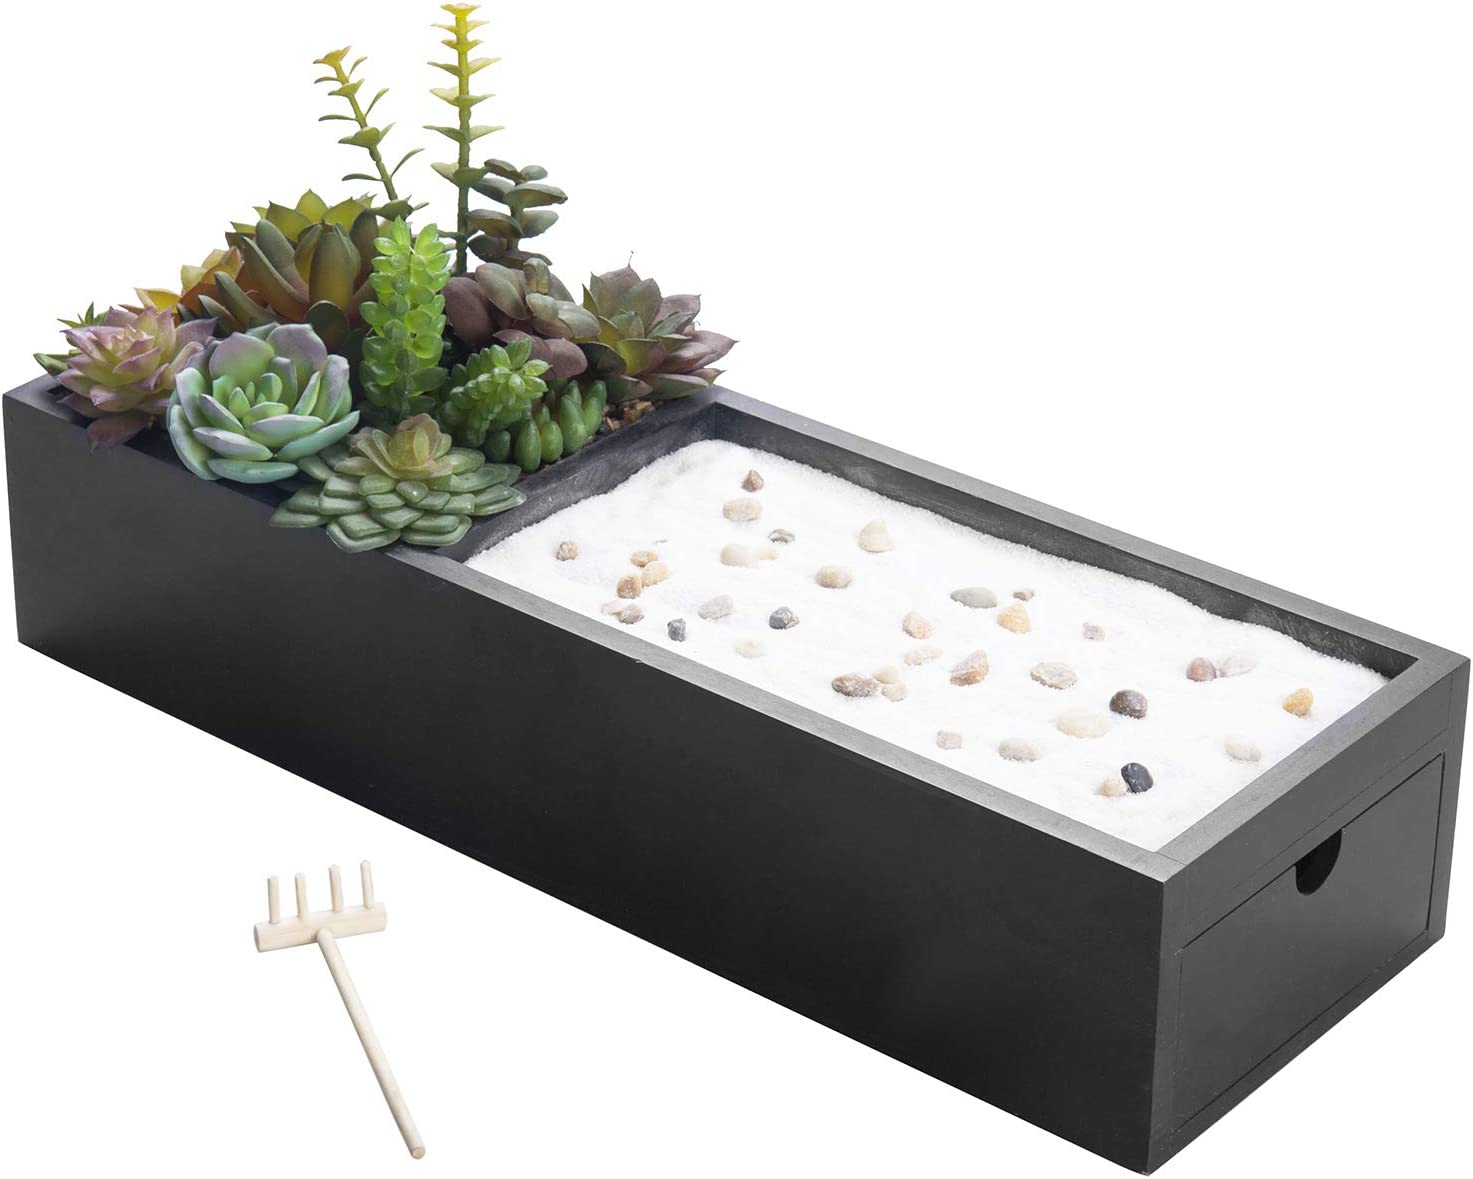 MyGift Zen Garden & Artificial Succulent Plants with Black Wood Storage Drawer and Sand, Pebbles and Rake